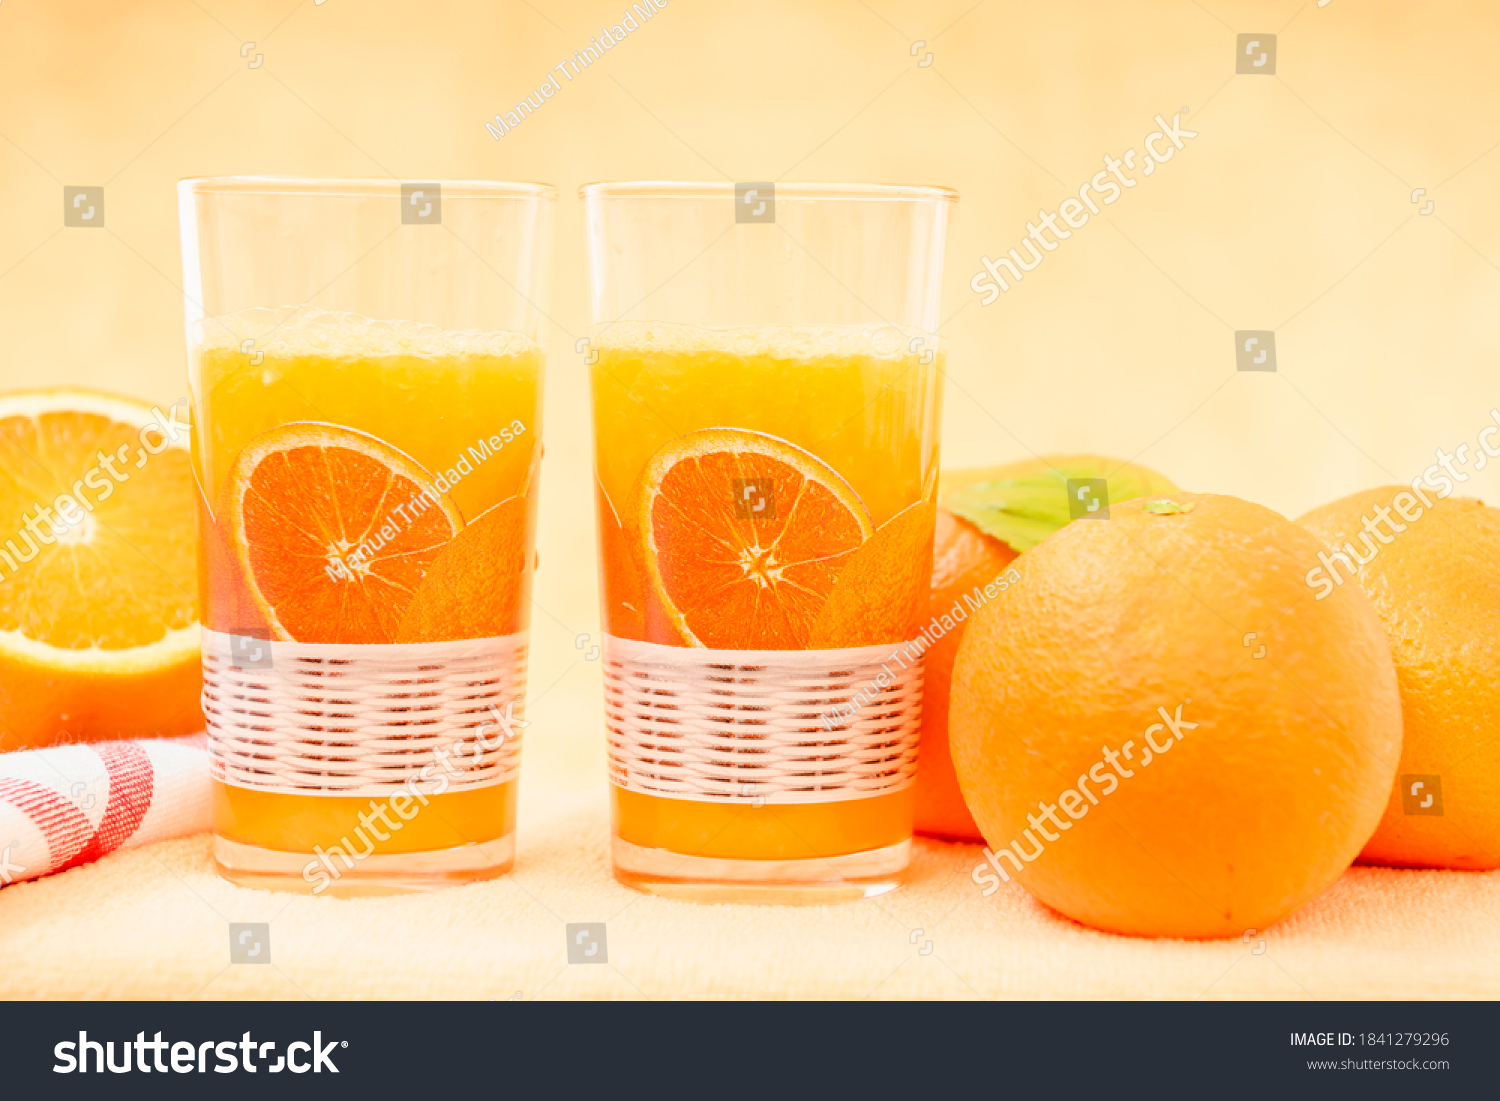 Two glasses of orange juice and fresh oranges on the table